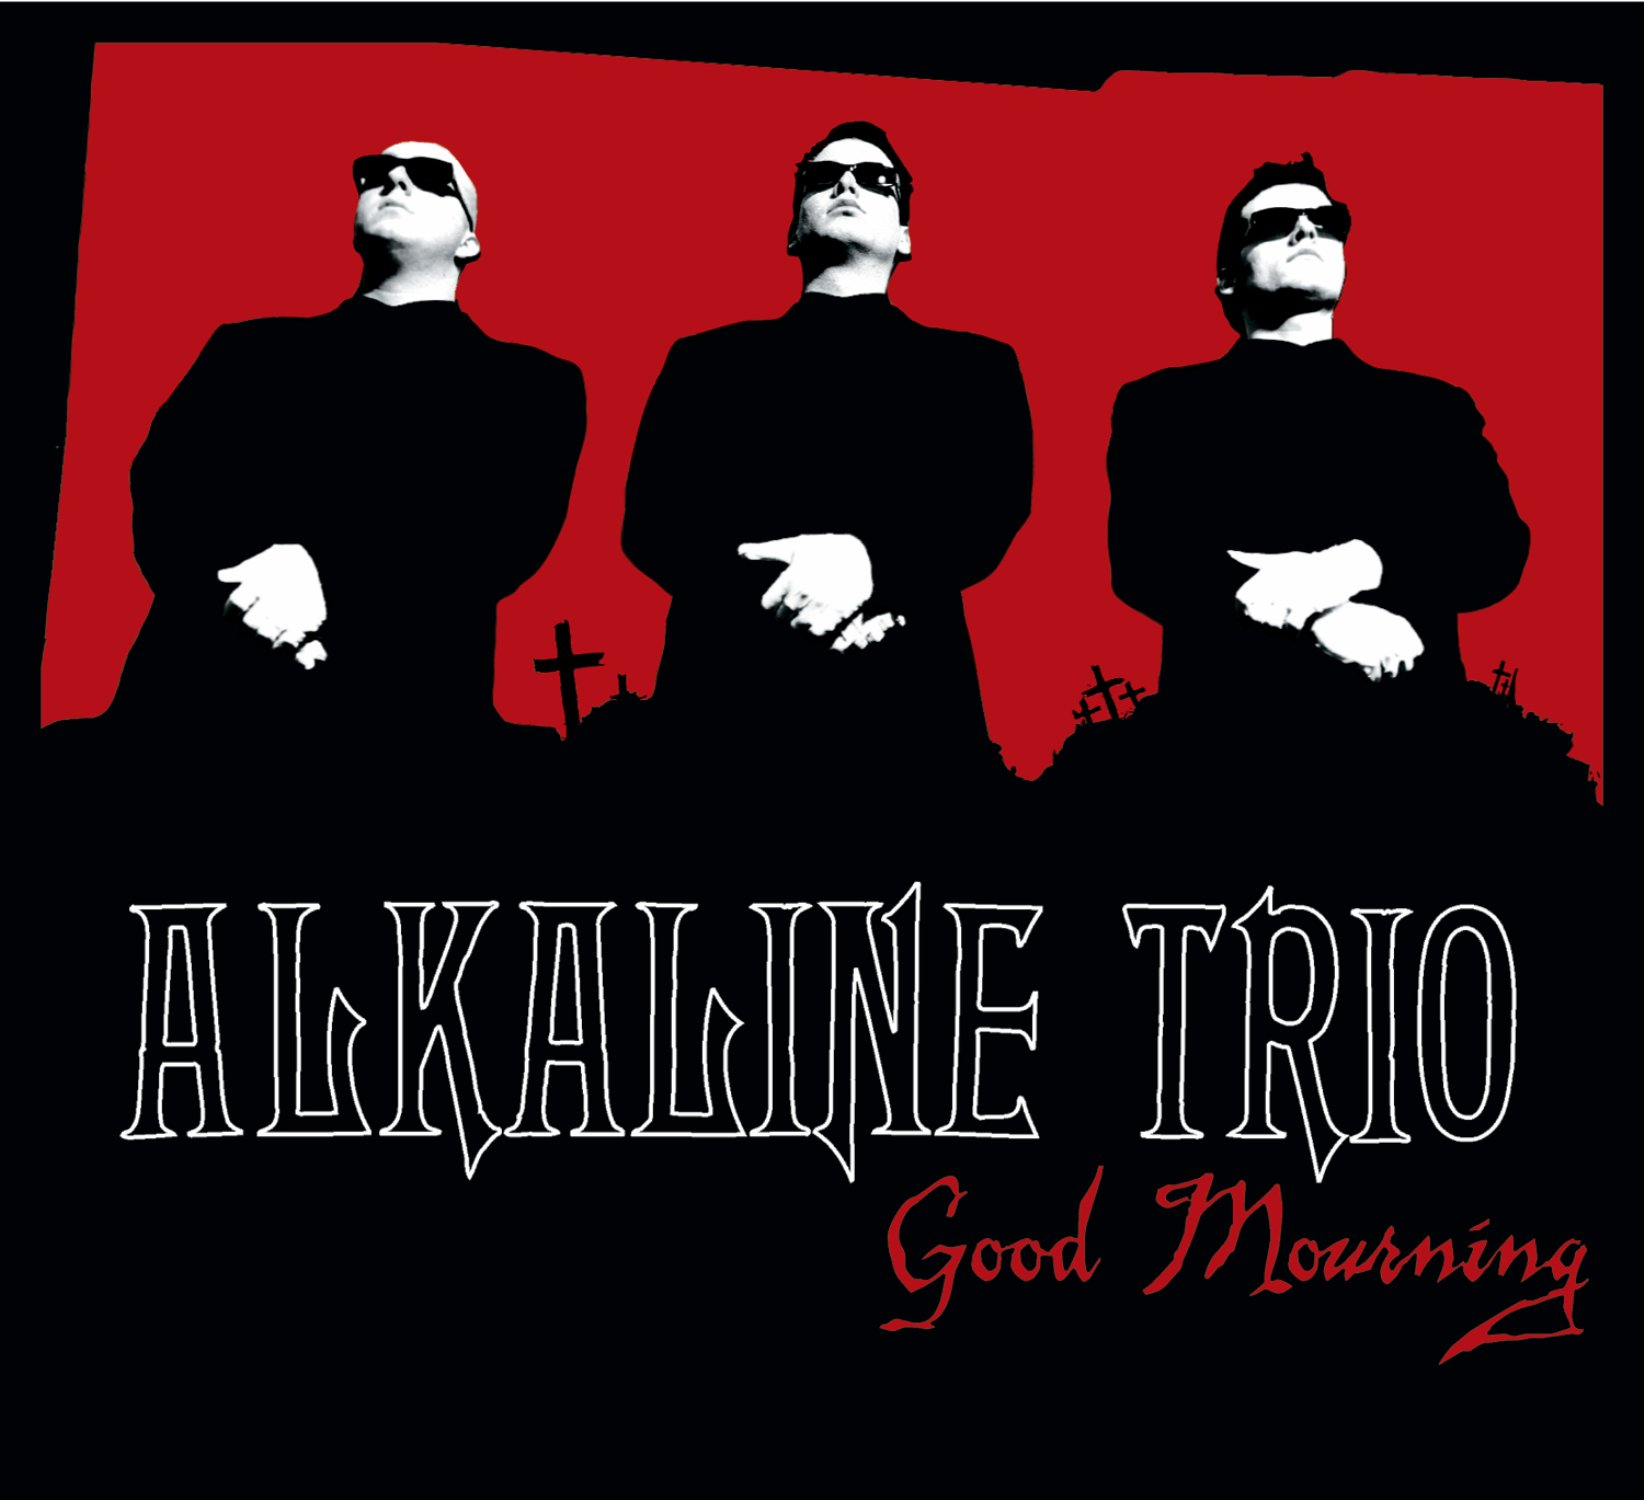 alkaline-trio-good-mourning